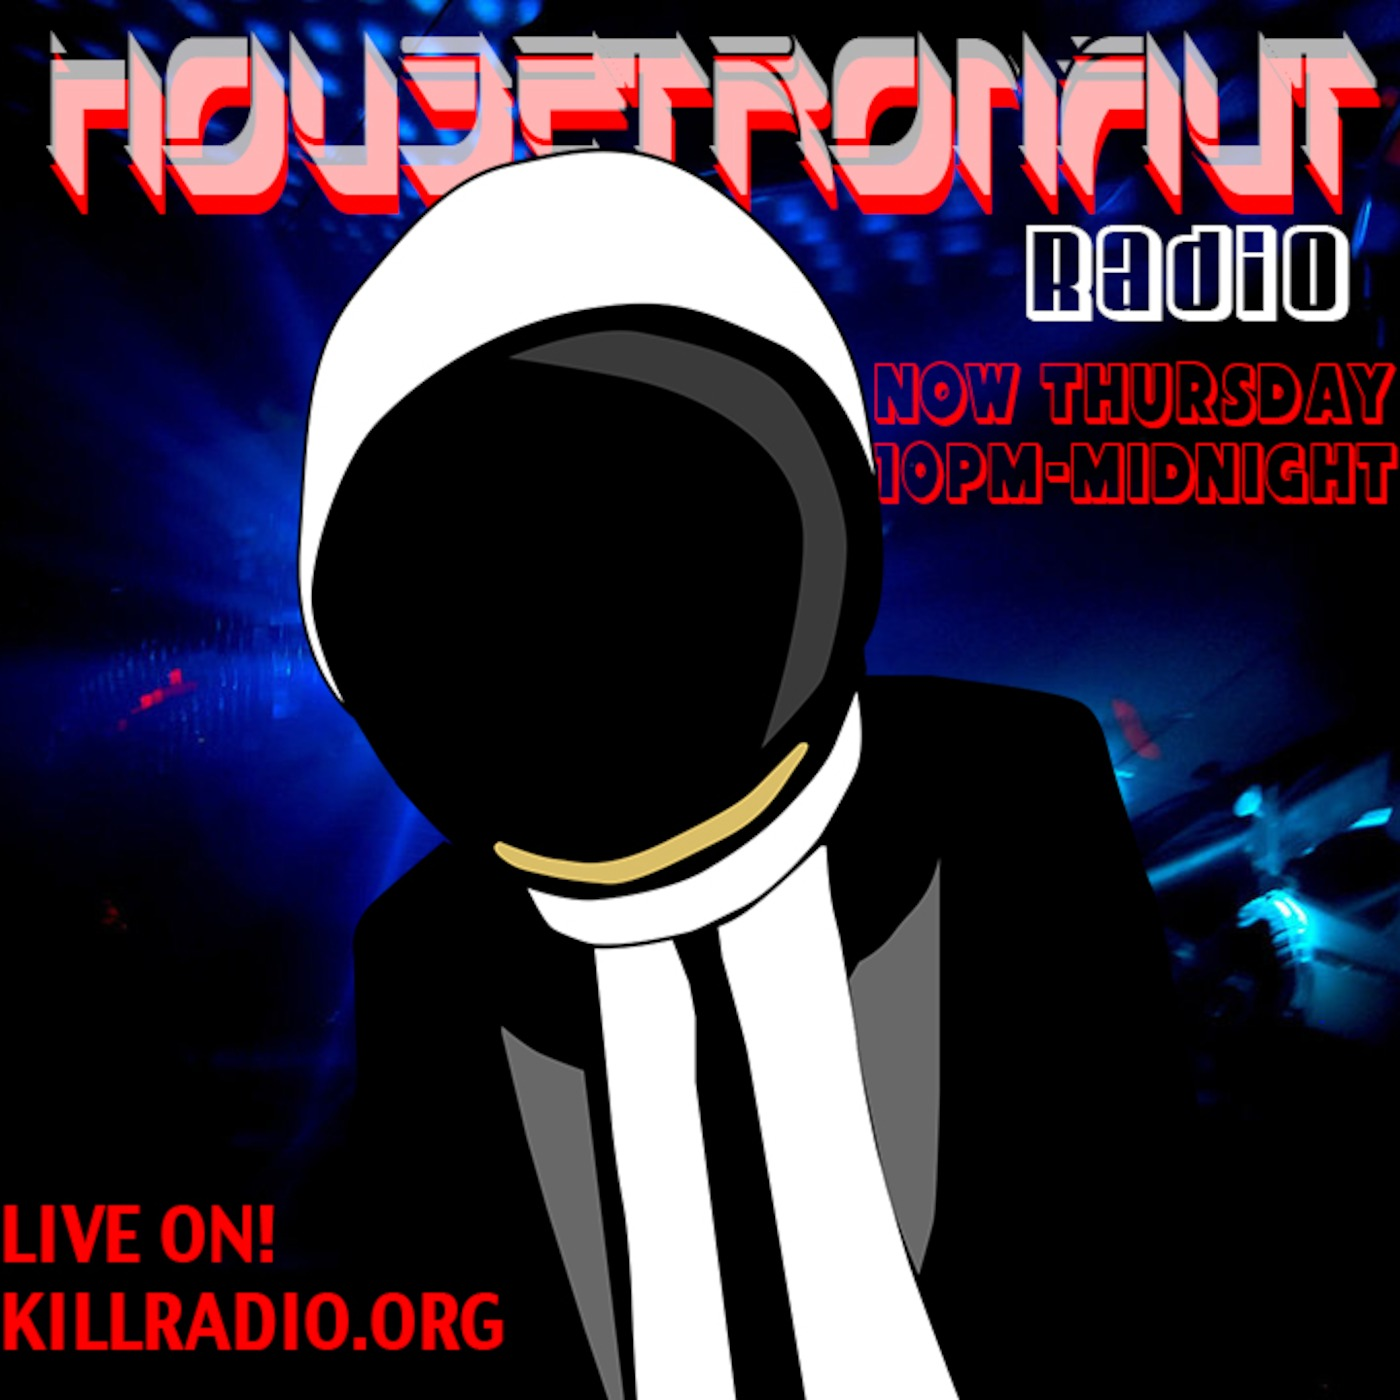 Housetronaut Radio Podcasts